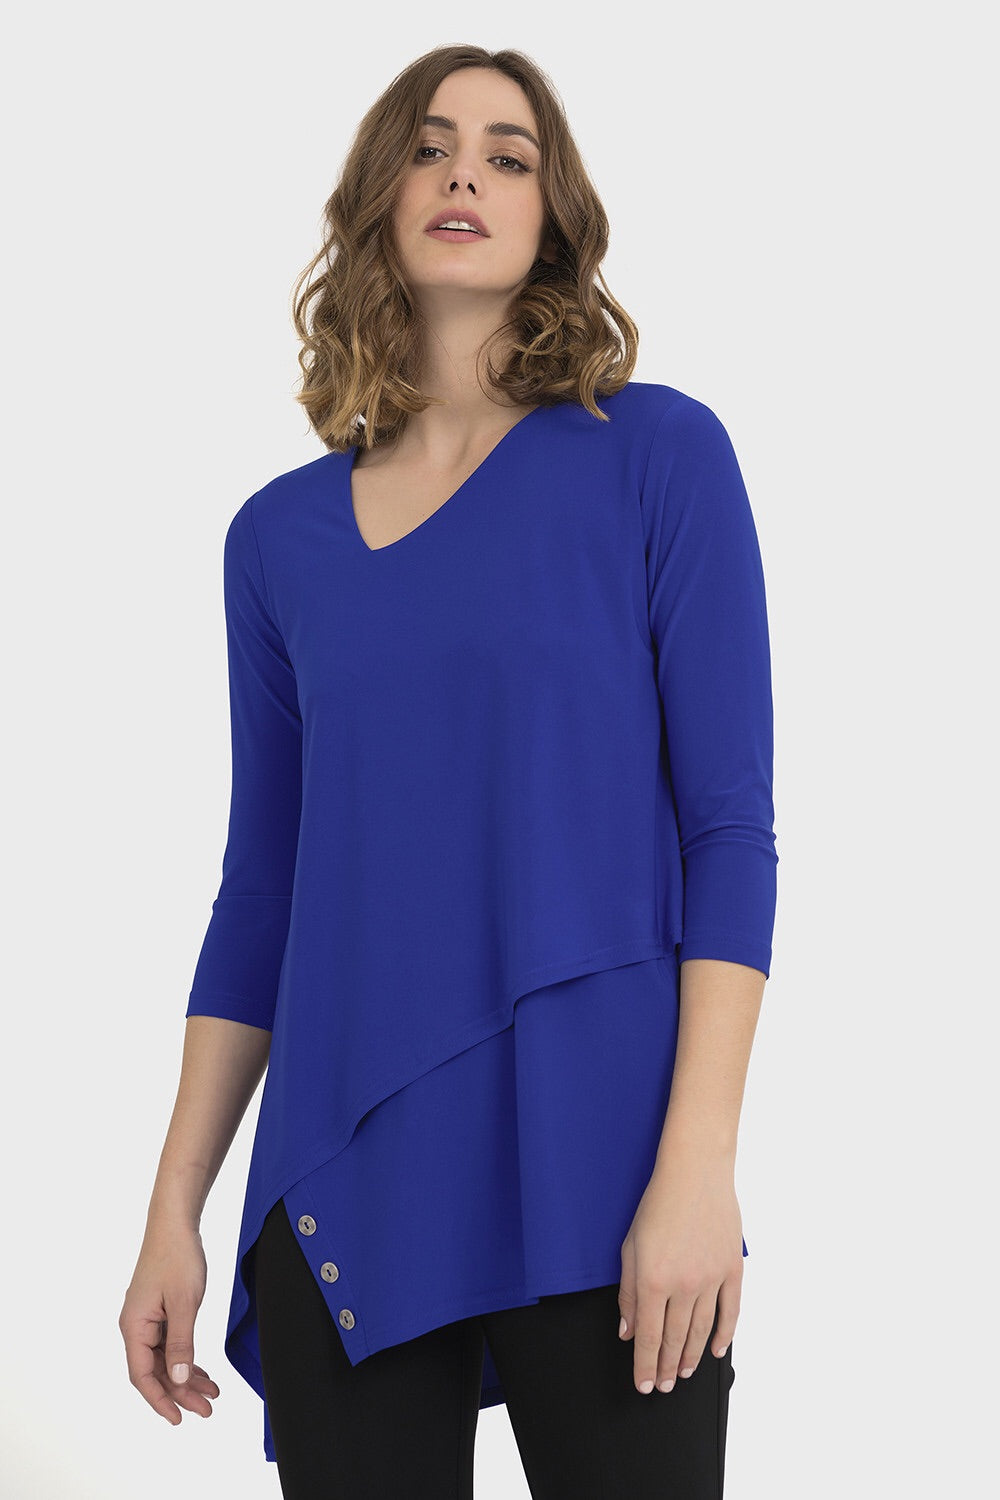 Joseph Ribkoff Tunic Style Top With Buttons